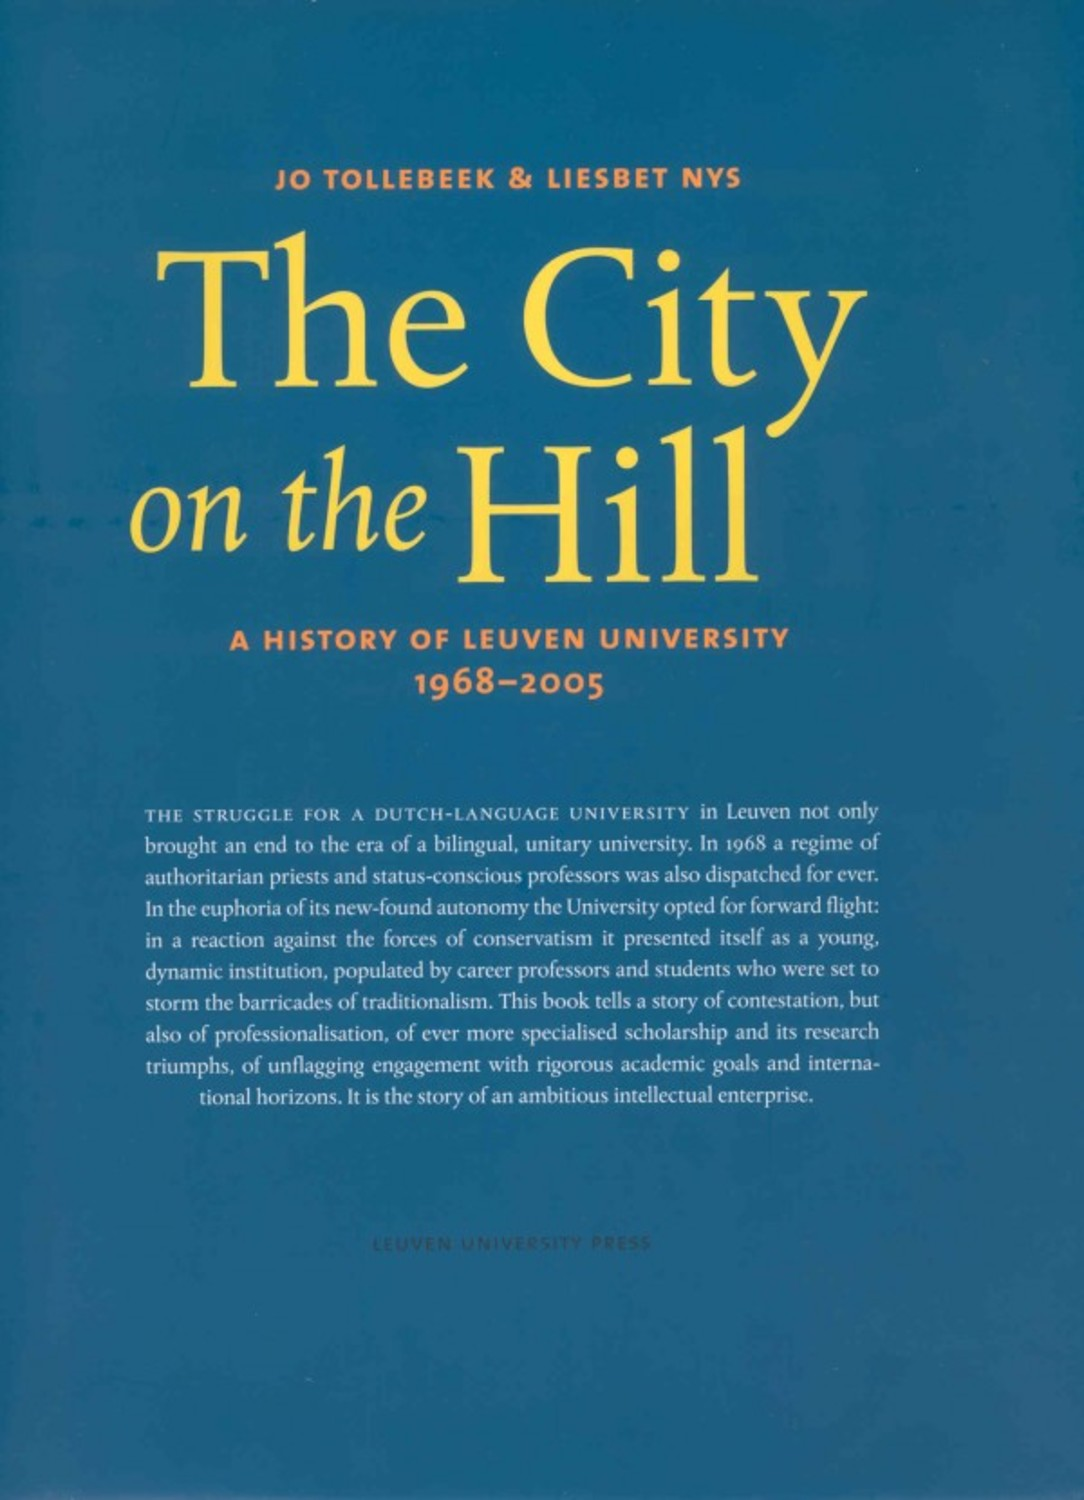 The City on the Hill